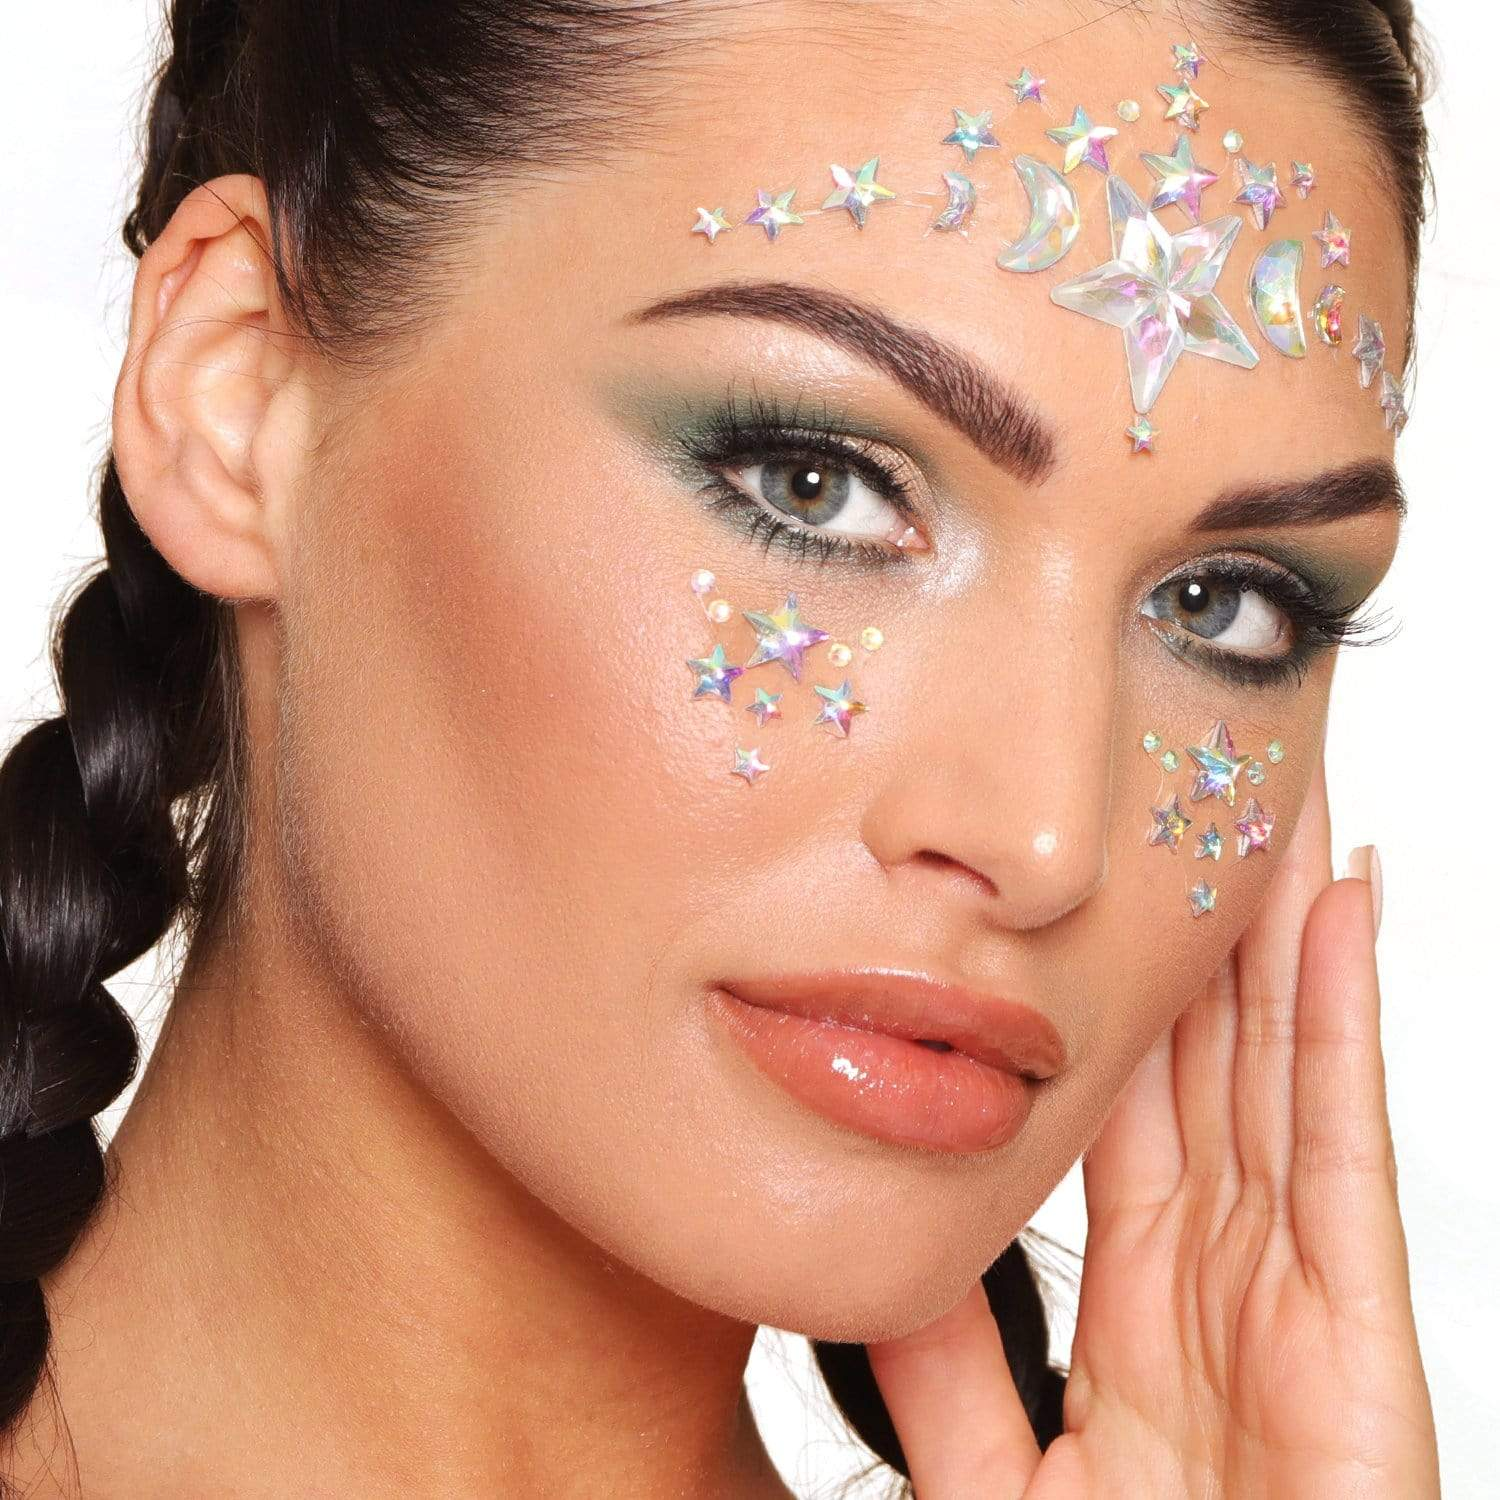 Festival Face Jewels - Starry Eyed - Jolie Beauty (4457542647883)